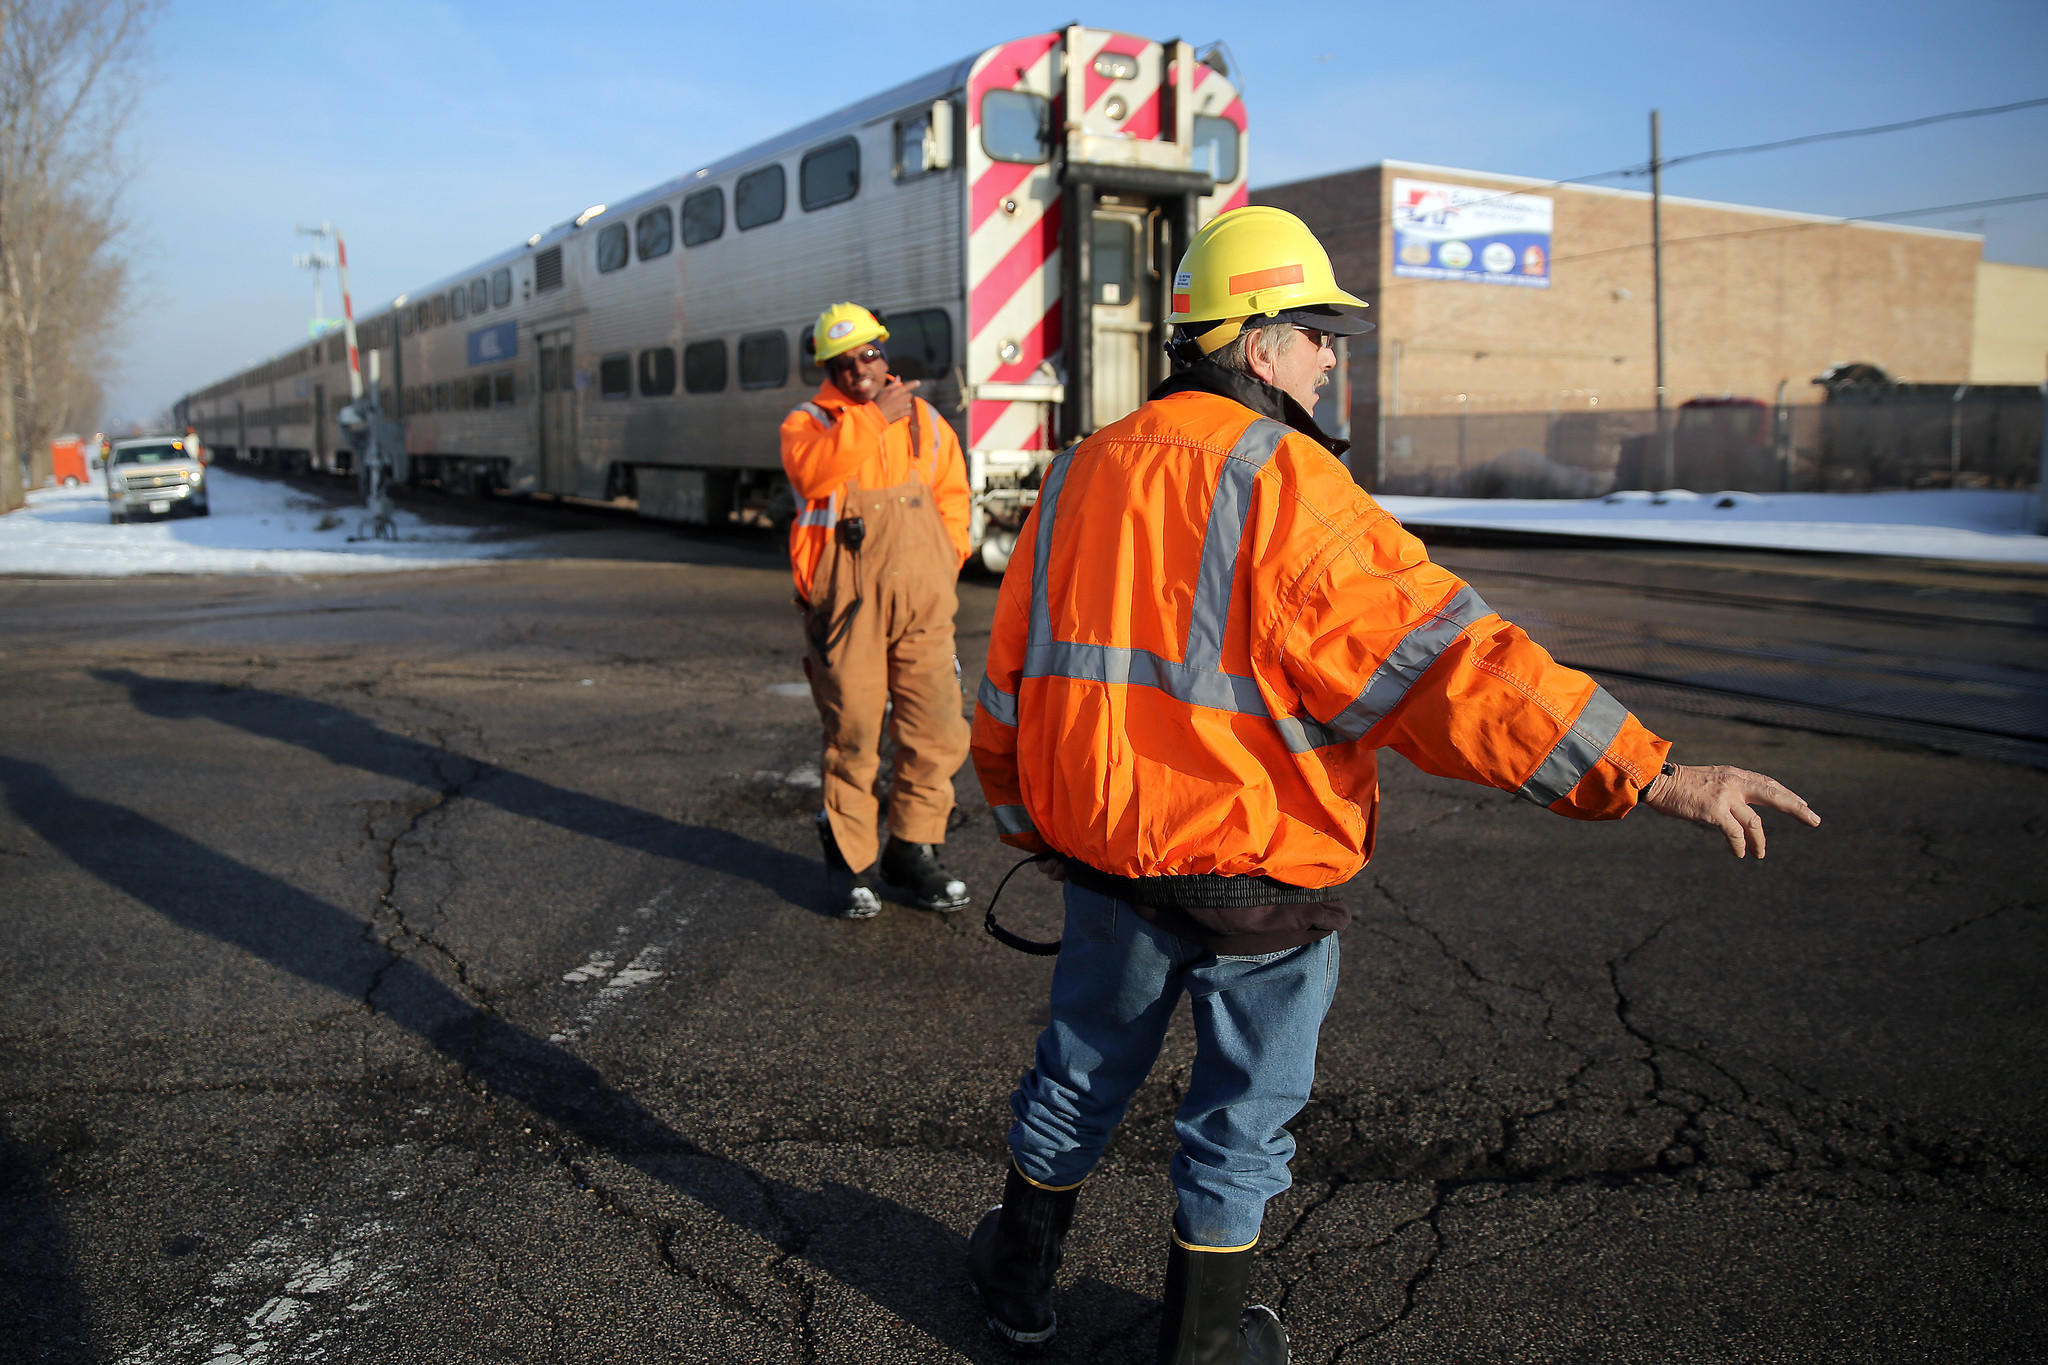 Rail workers stop traffic to allow a train to pass after a pedestrian was struck and killed by an earlier train.